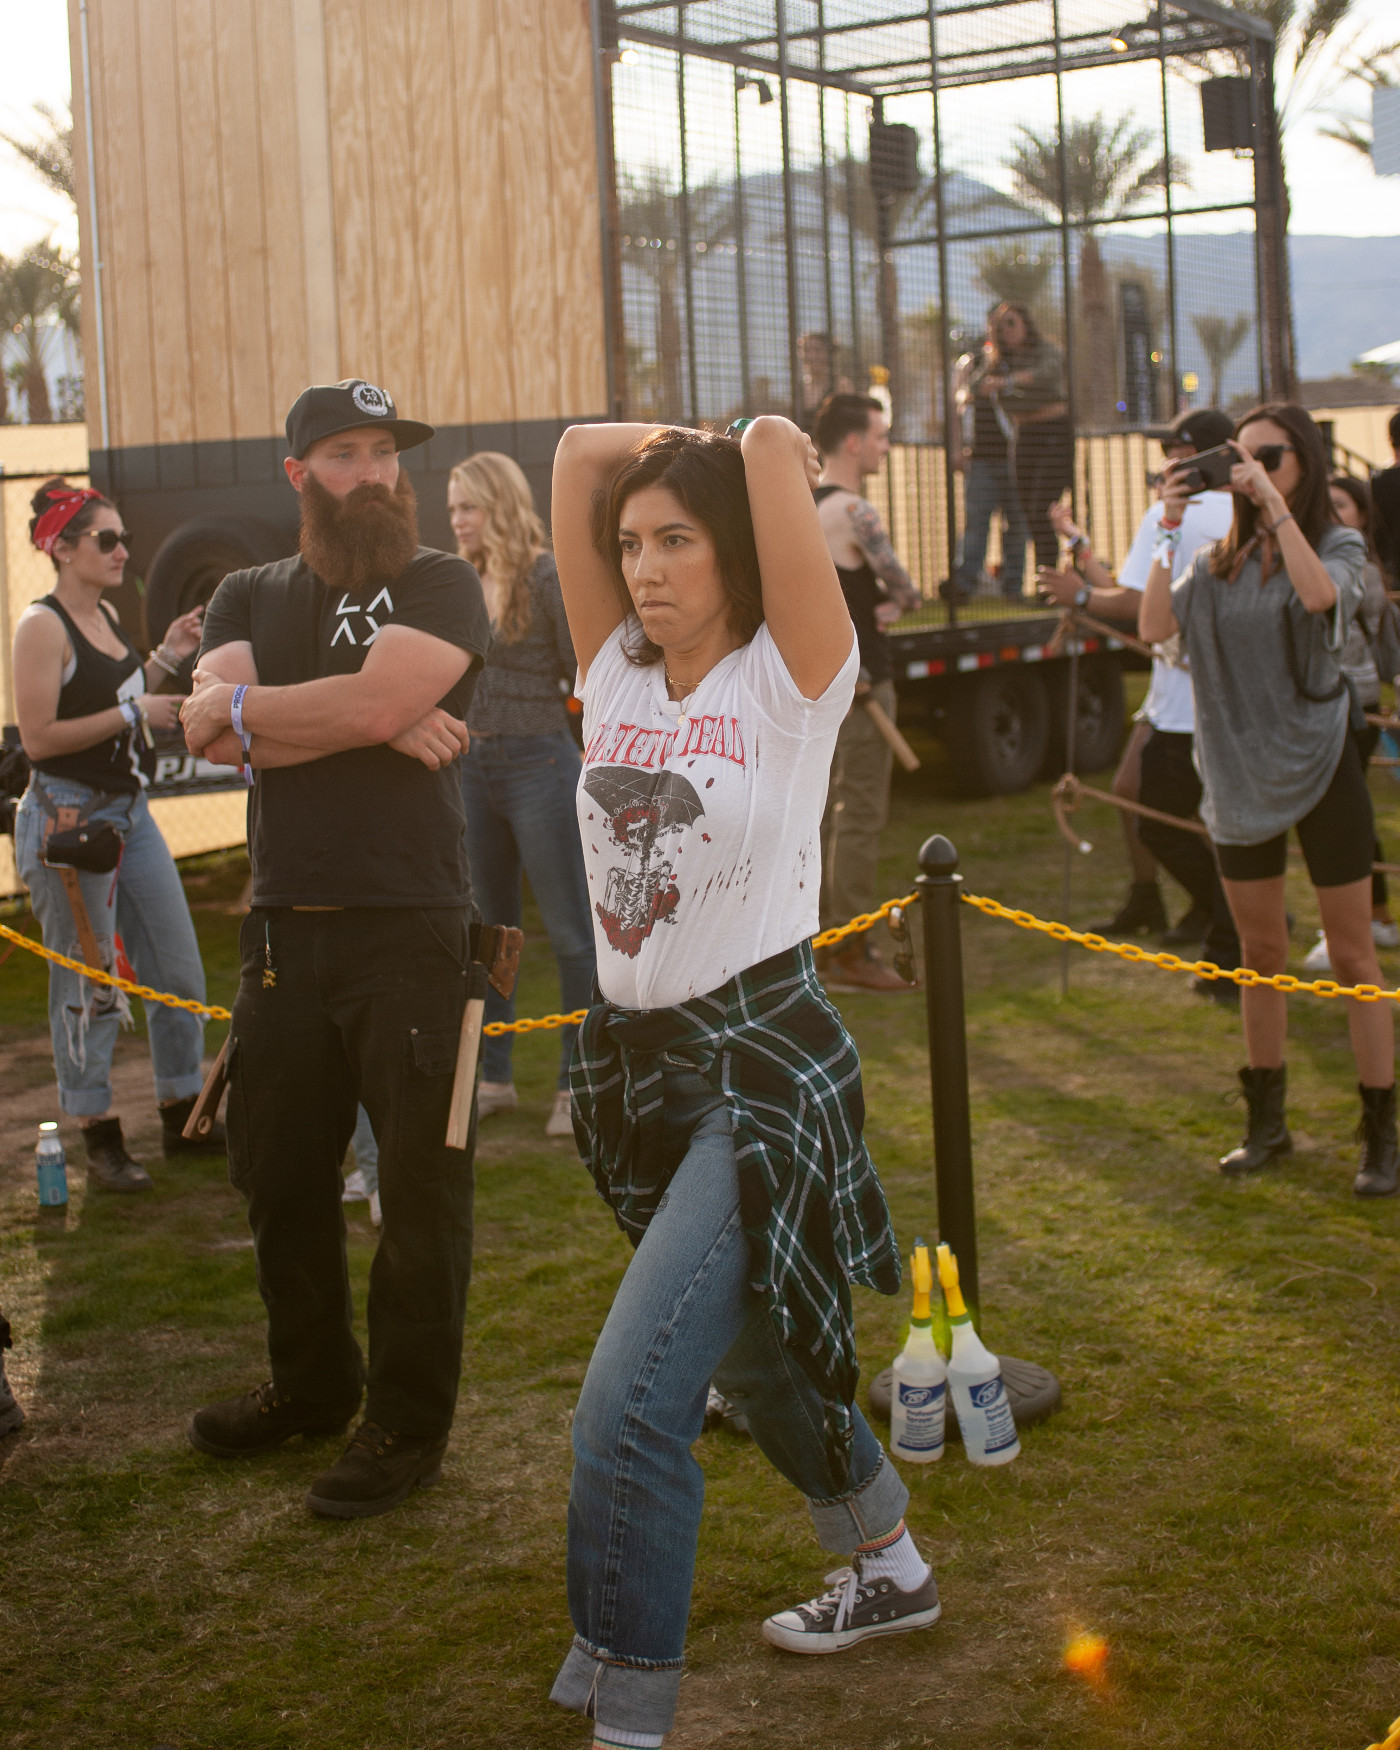 images/4xFar 2020/Axe throwing lessons